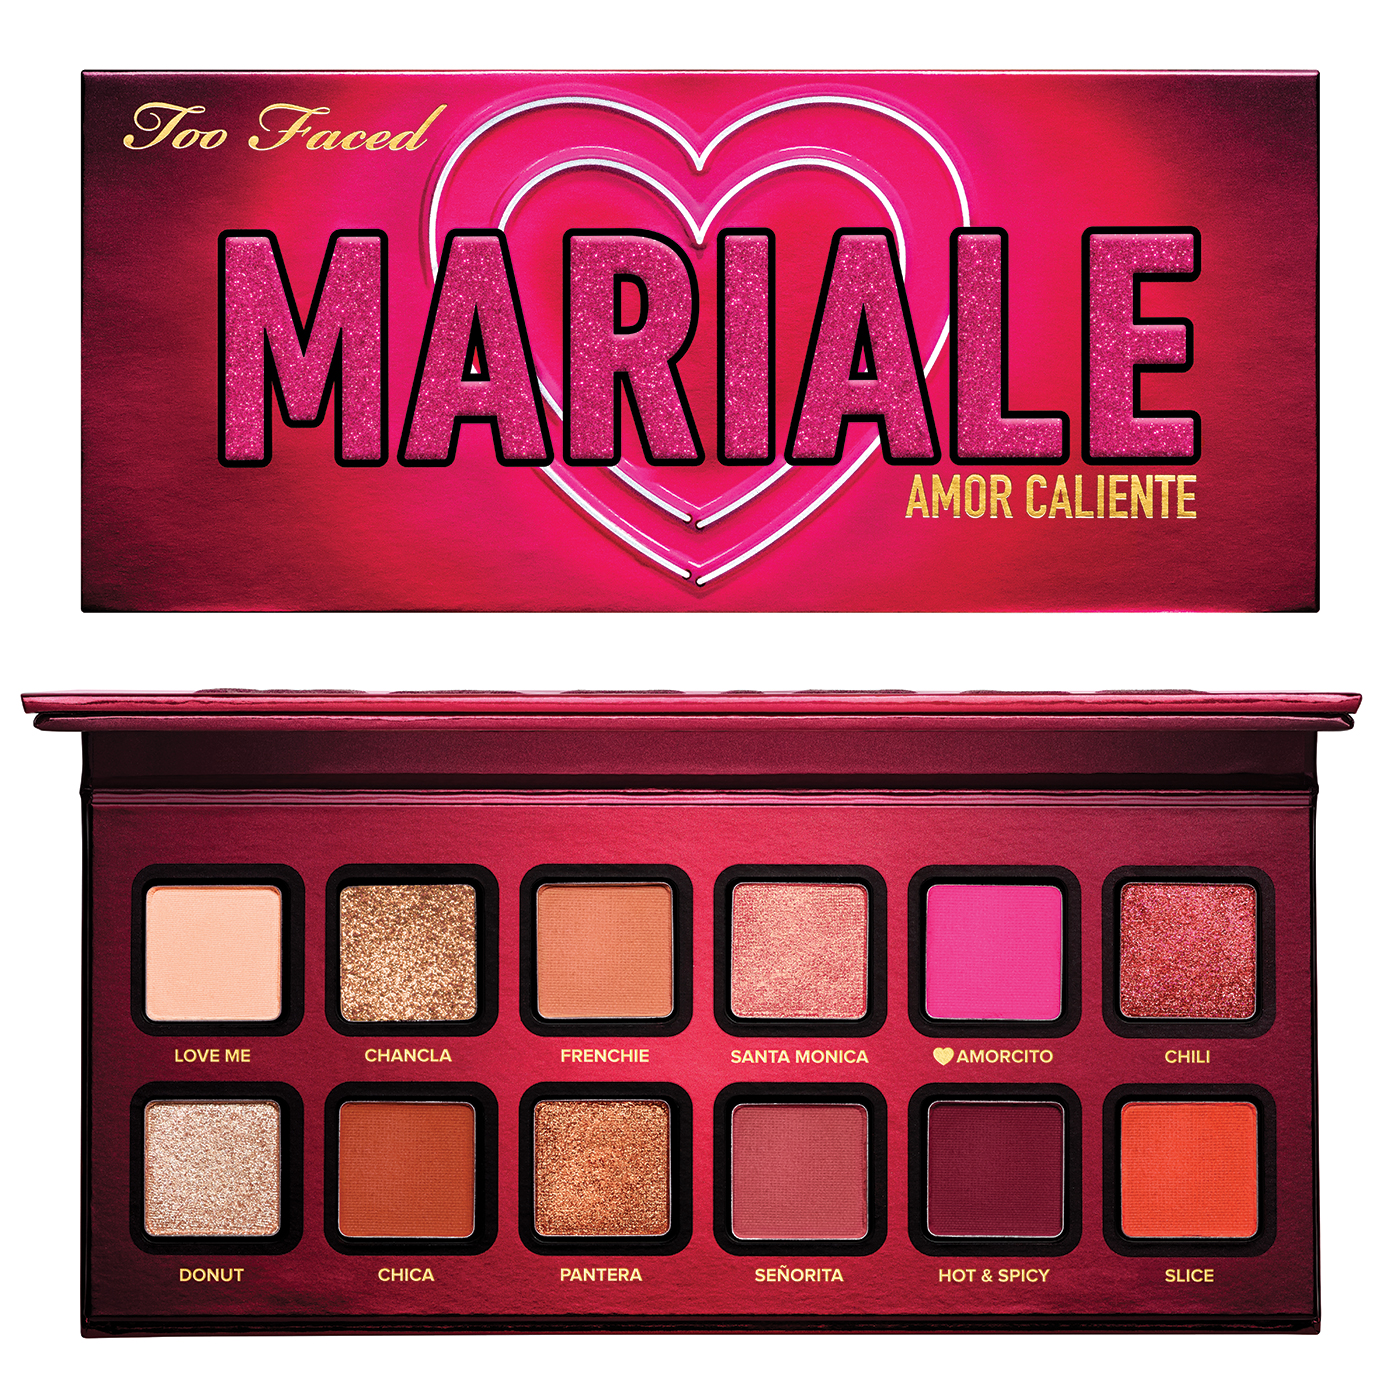 TooFaced Fall 2020 Mariale Amore Caliente Palette